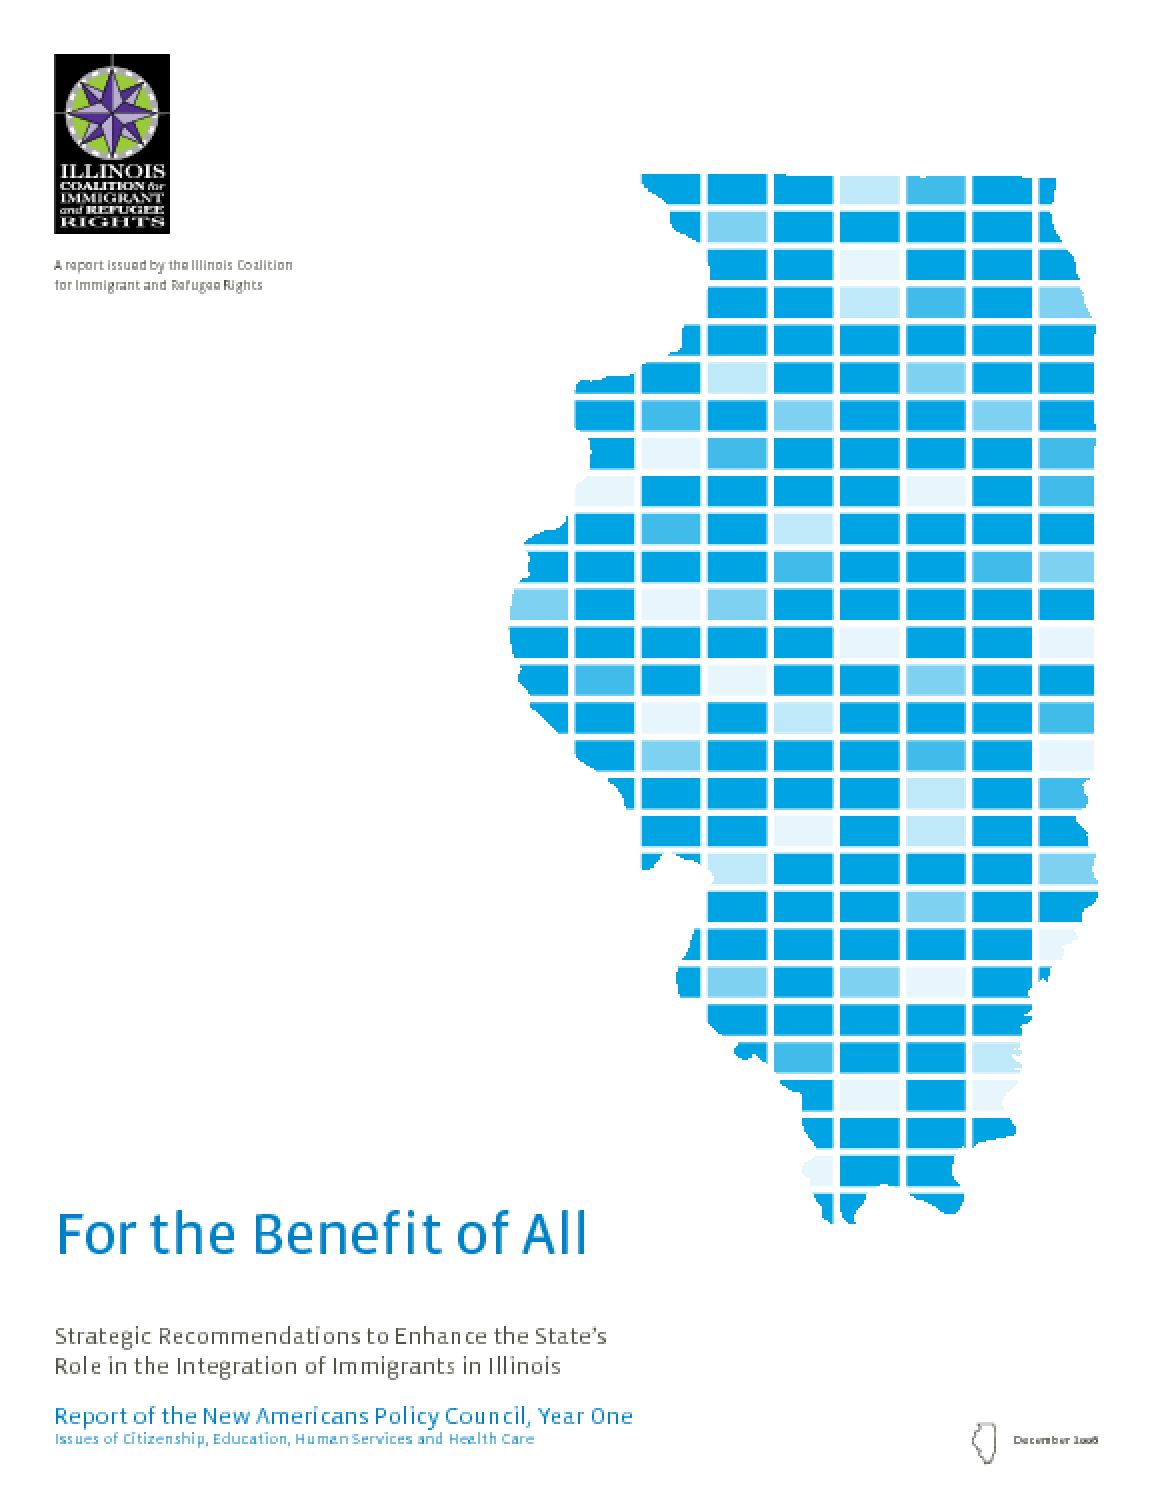 For the Benefit of All: Strategic Recommendations to Enhance the State's Role in the Integration of Immigrants in Illinois (Report of the New Americans Policy Council, Year One)